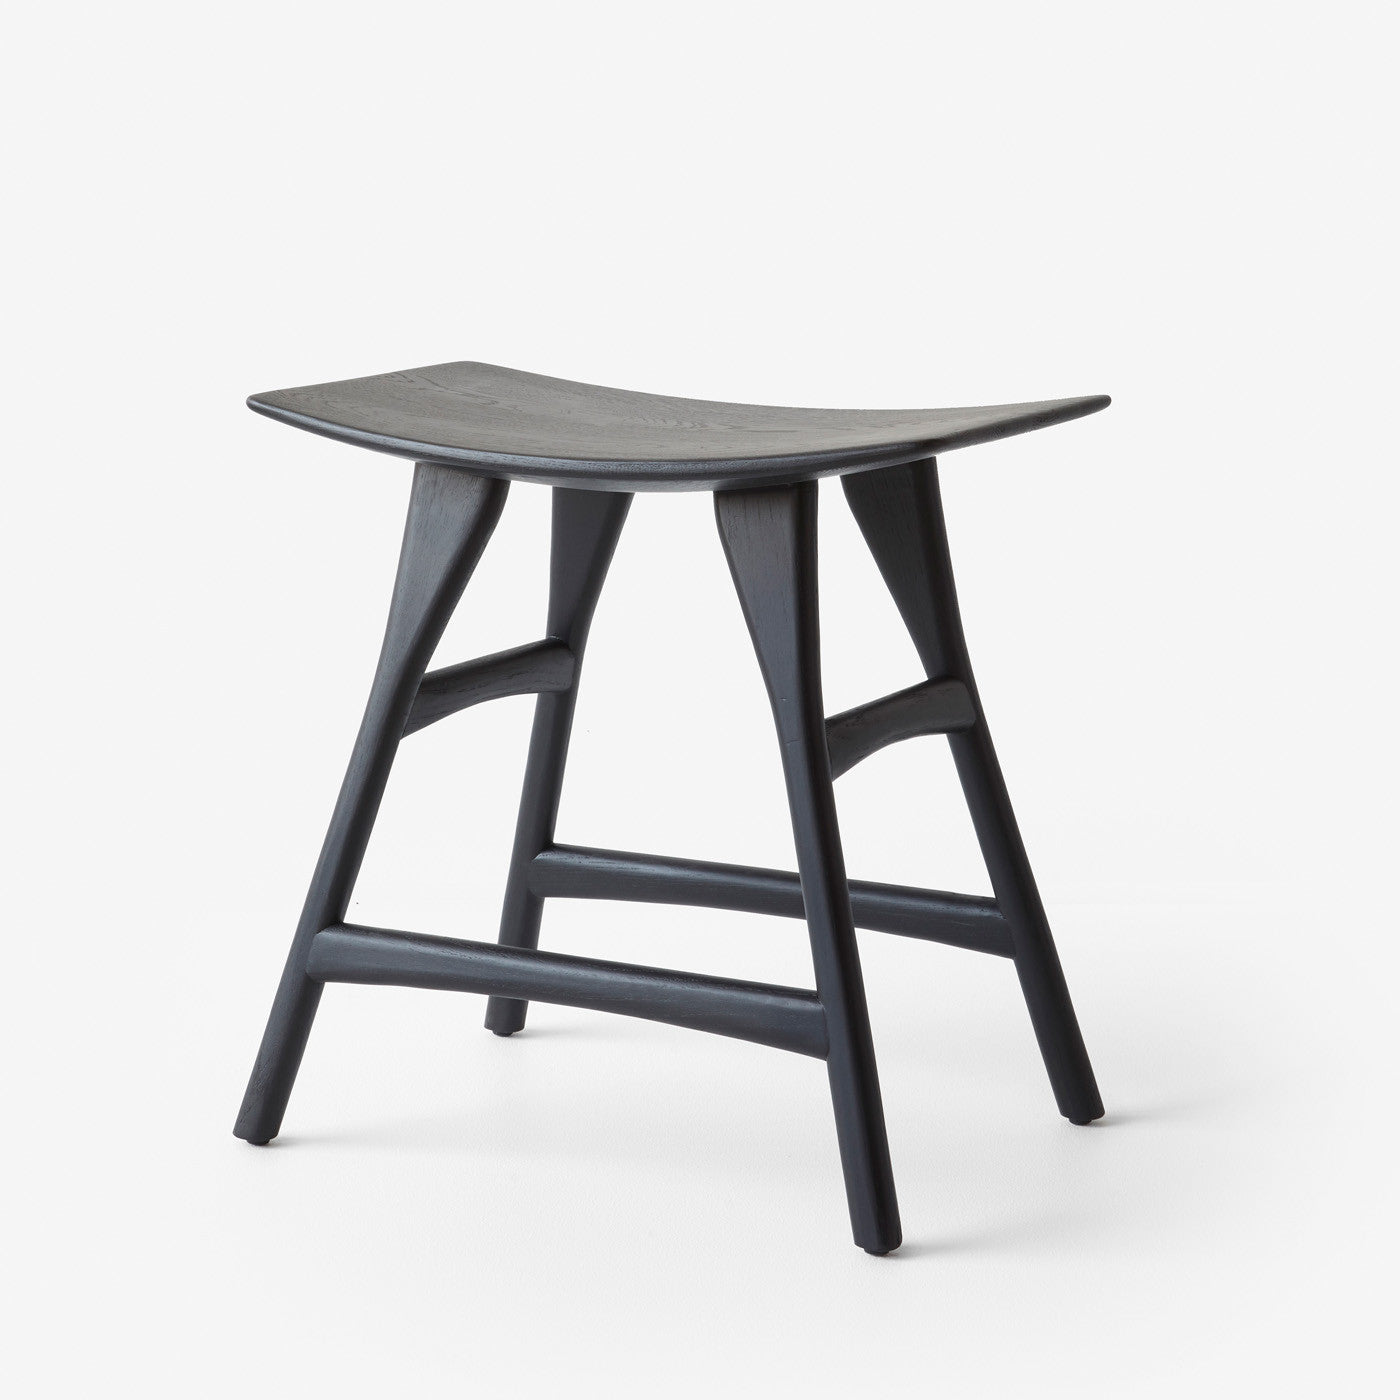 Oak Osso black dining stool